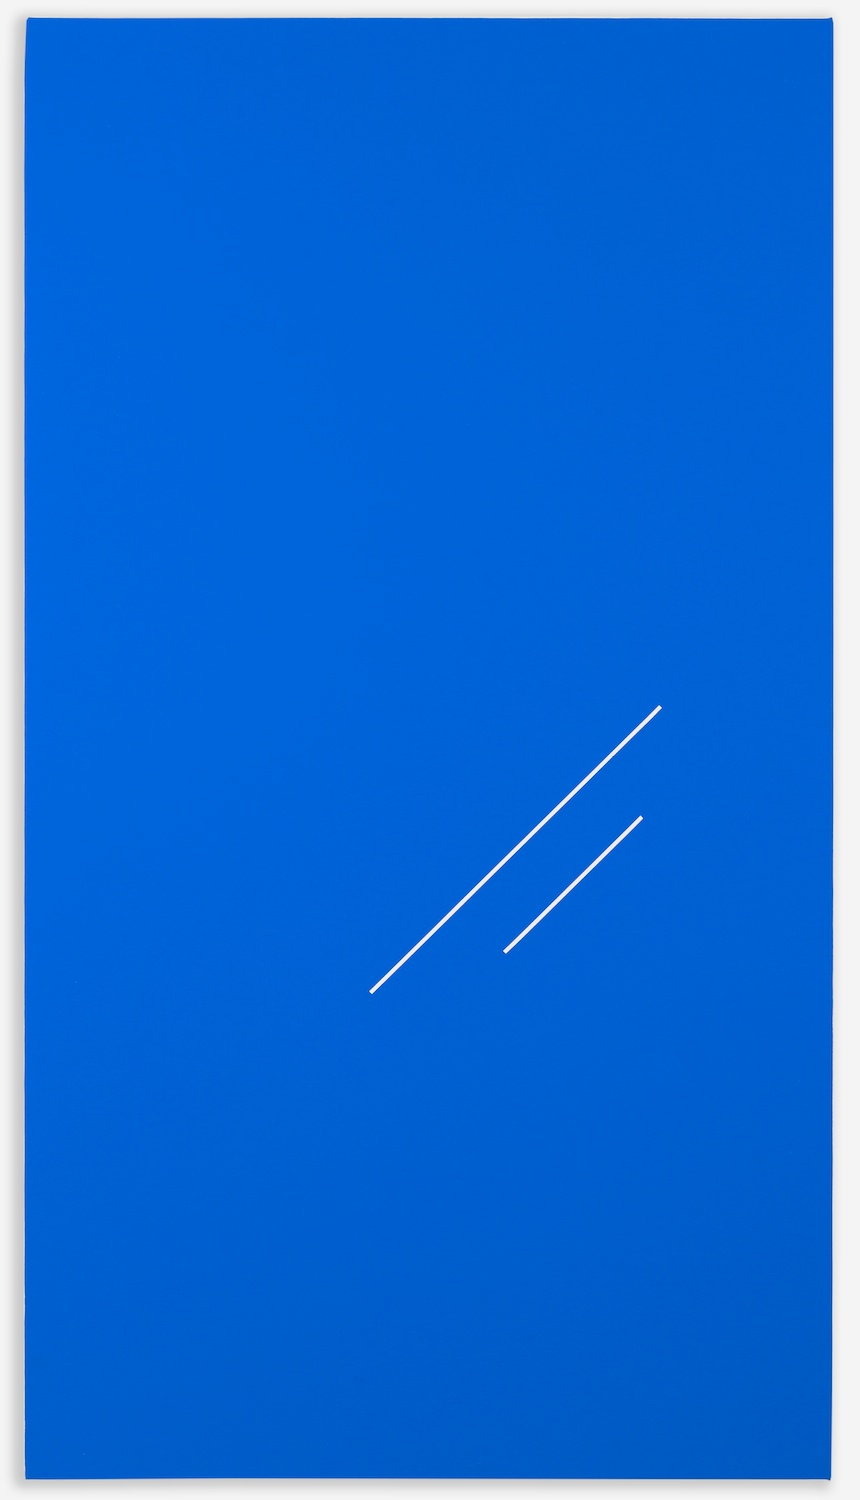 Paul Cowan  BCEAUSE THE SKY IS BULE   2013 Chroma-key blue paint on canvas 48h x 26w in  PC090